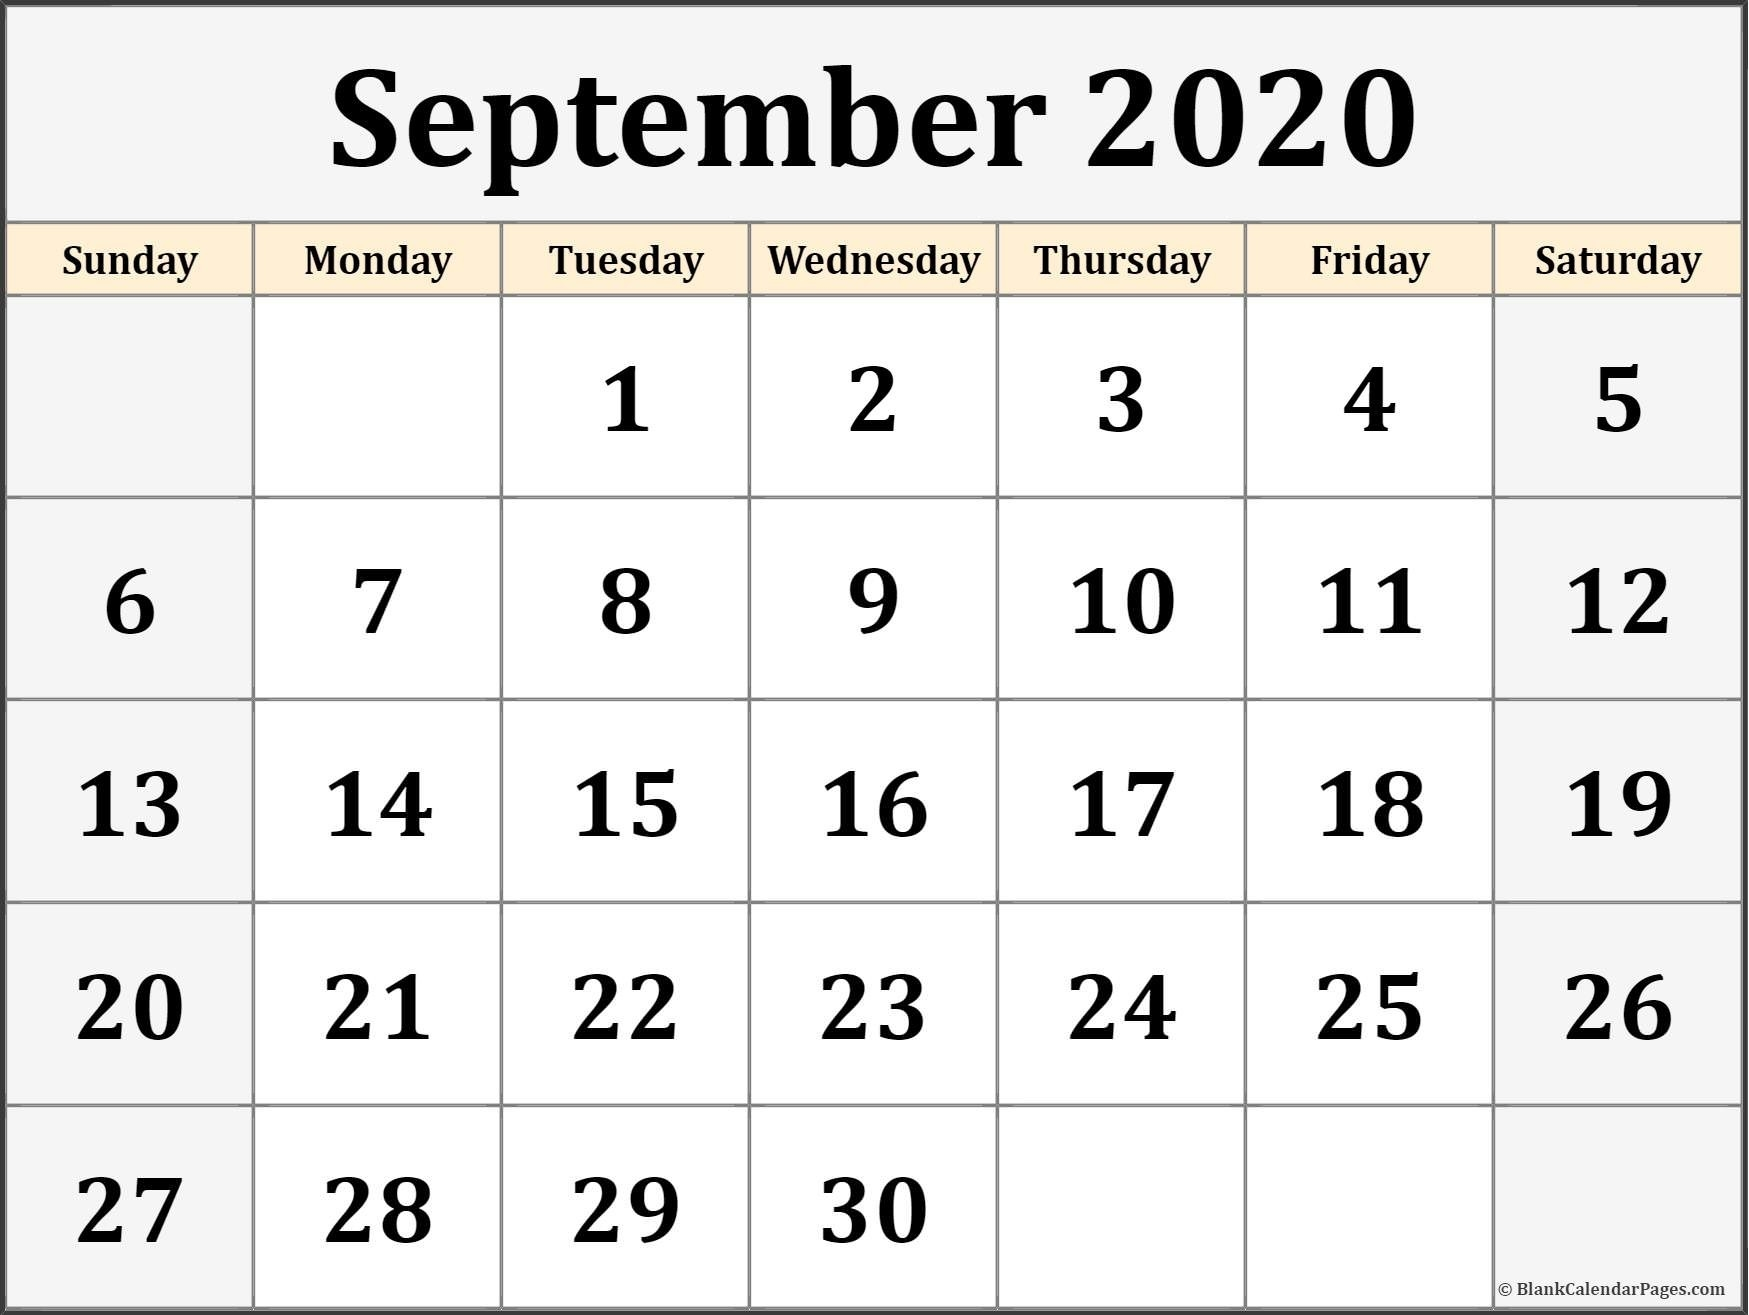 September 2020 Calendar | Free Printable Monthly Calendars  Sept 2020 Calender Monday Thru Sunday